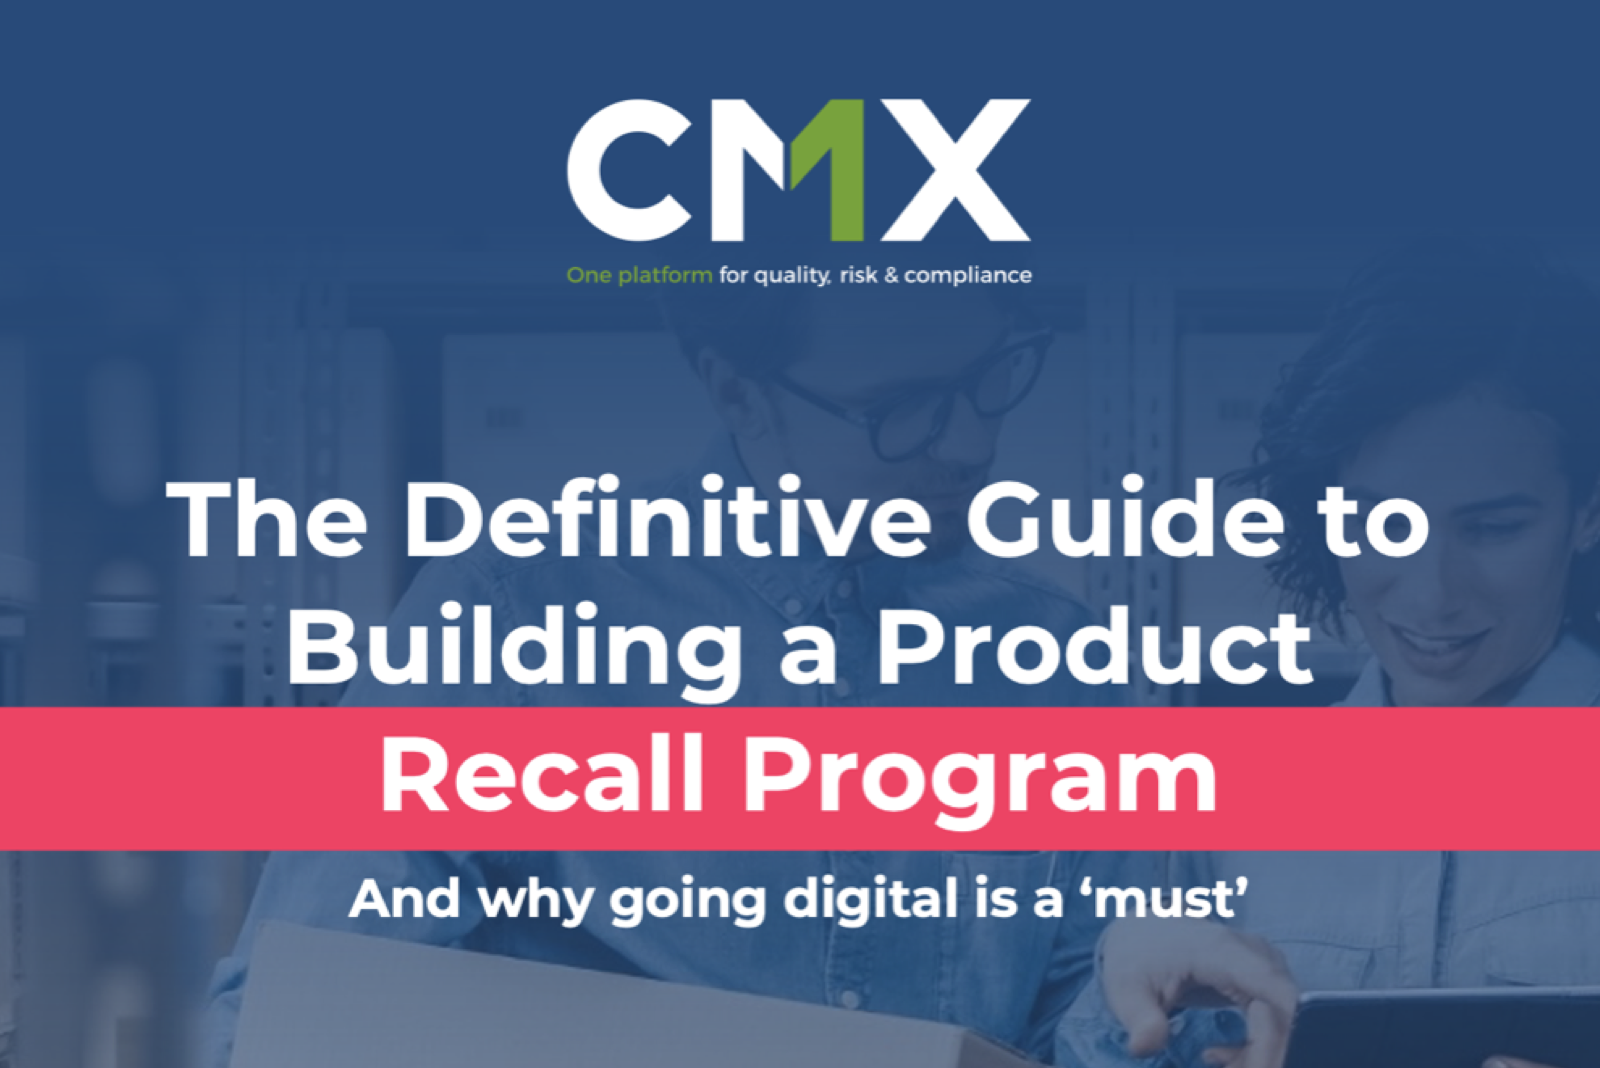 The Definitive Guide to Building a Product Recall Program